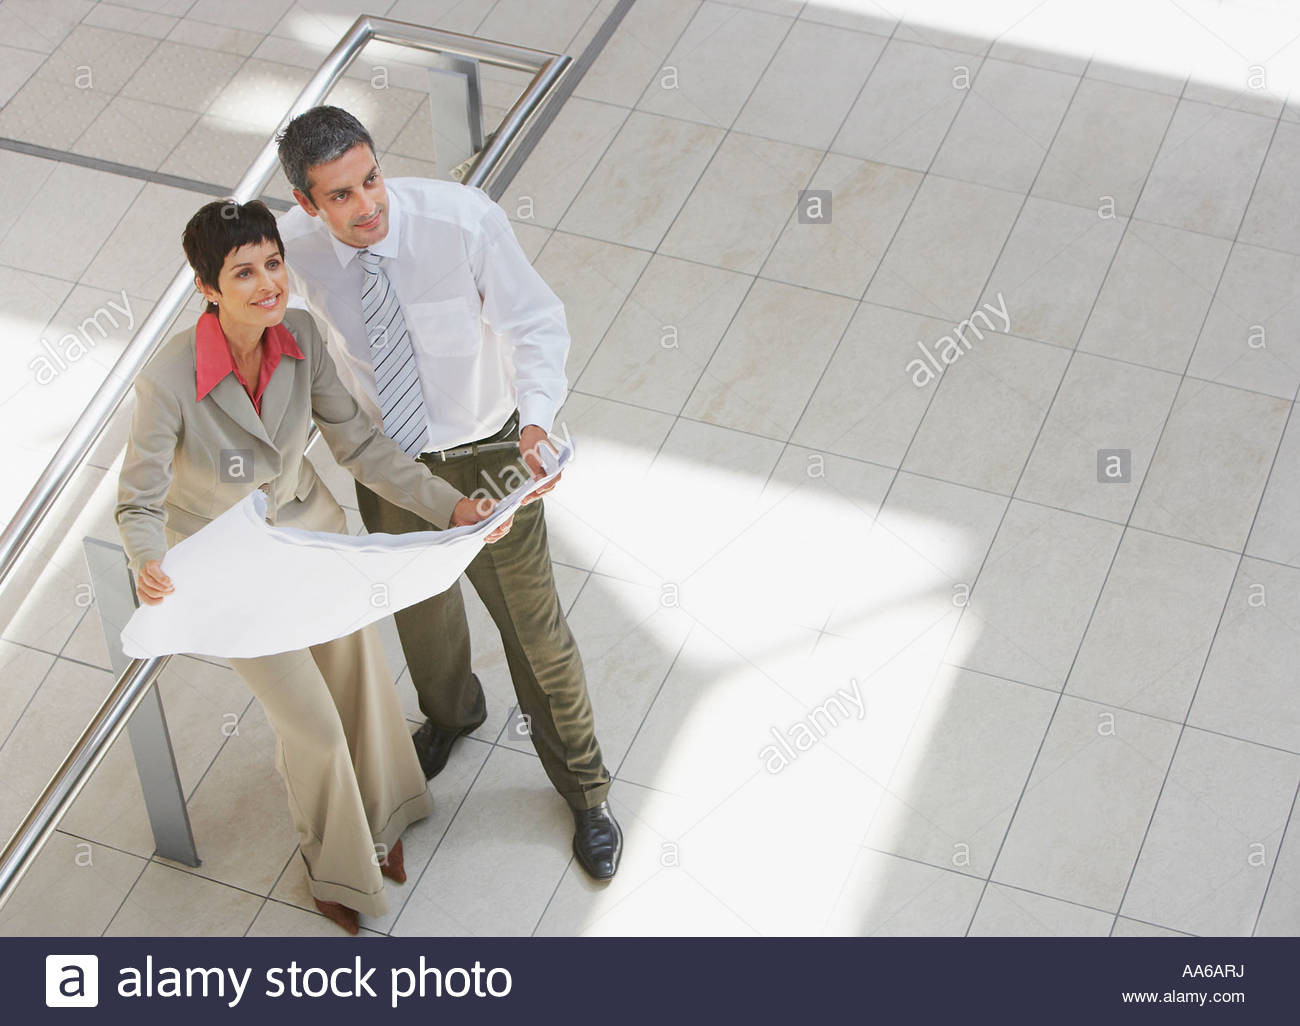 Aerial view of businessman and woman with blueprints - Stock Image